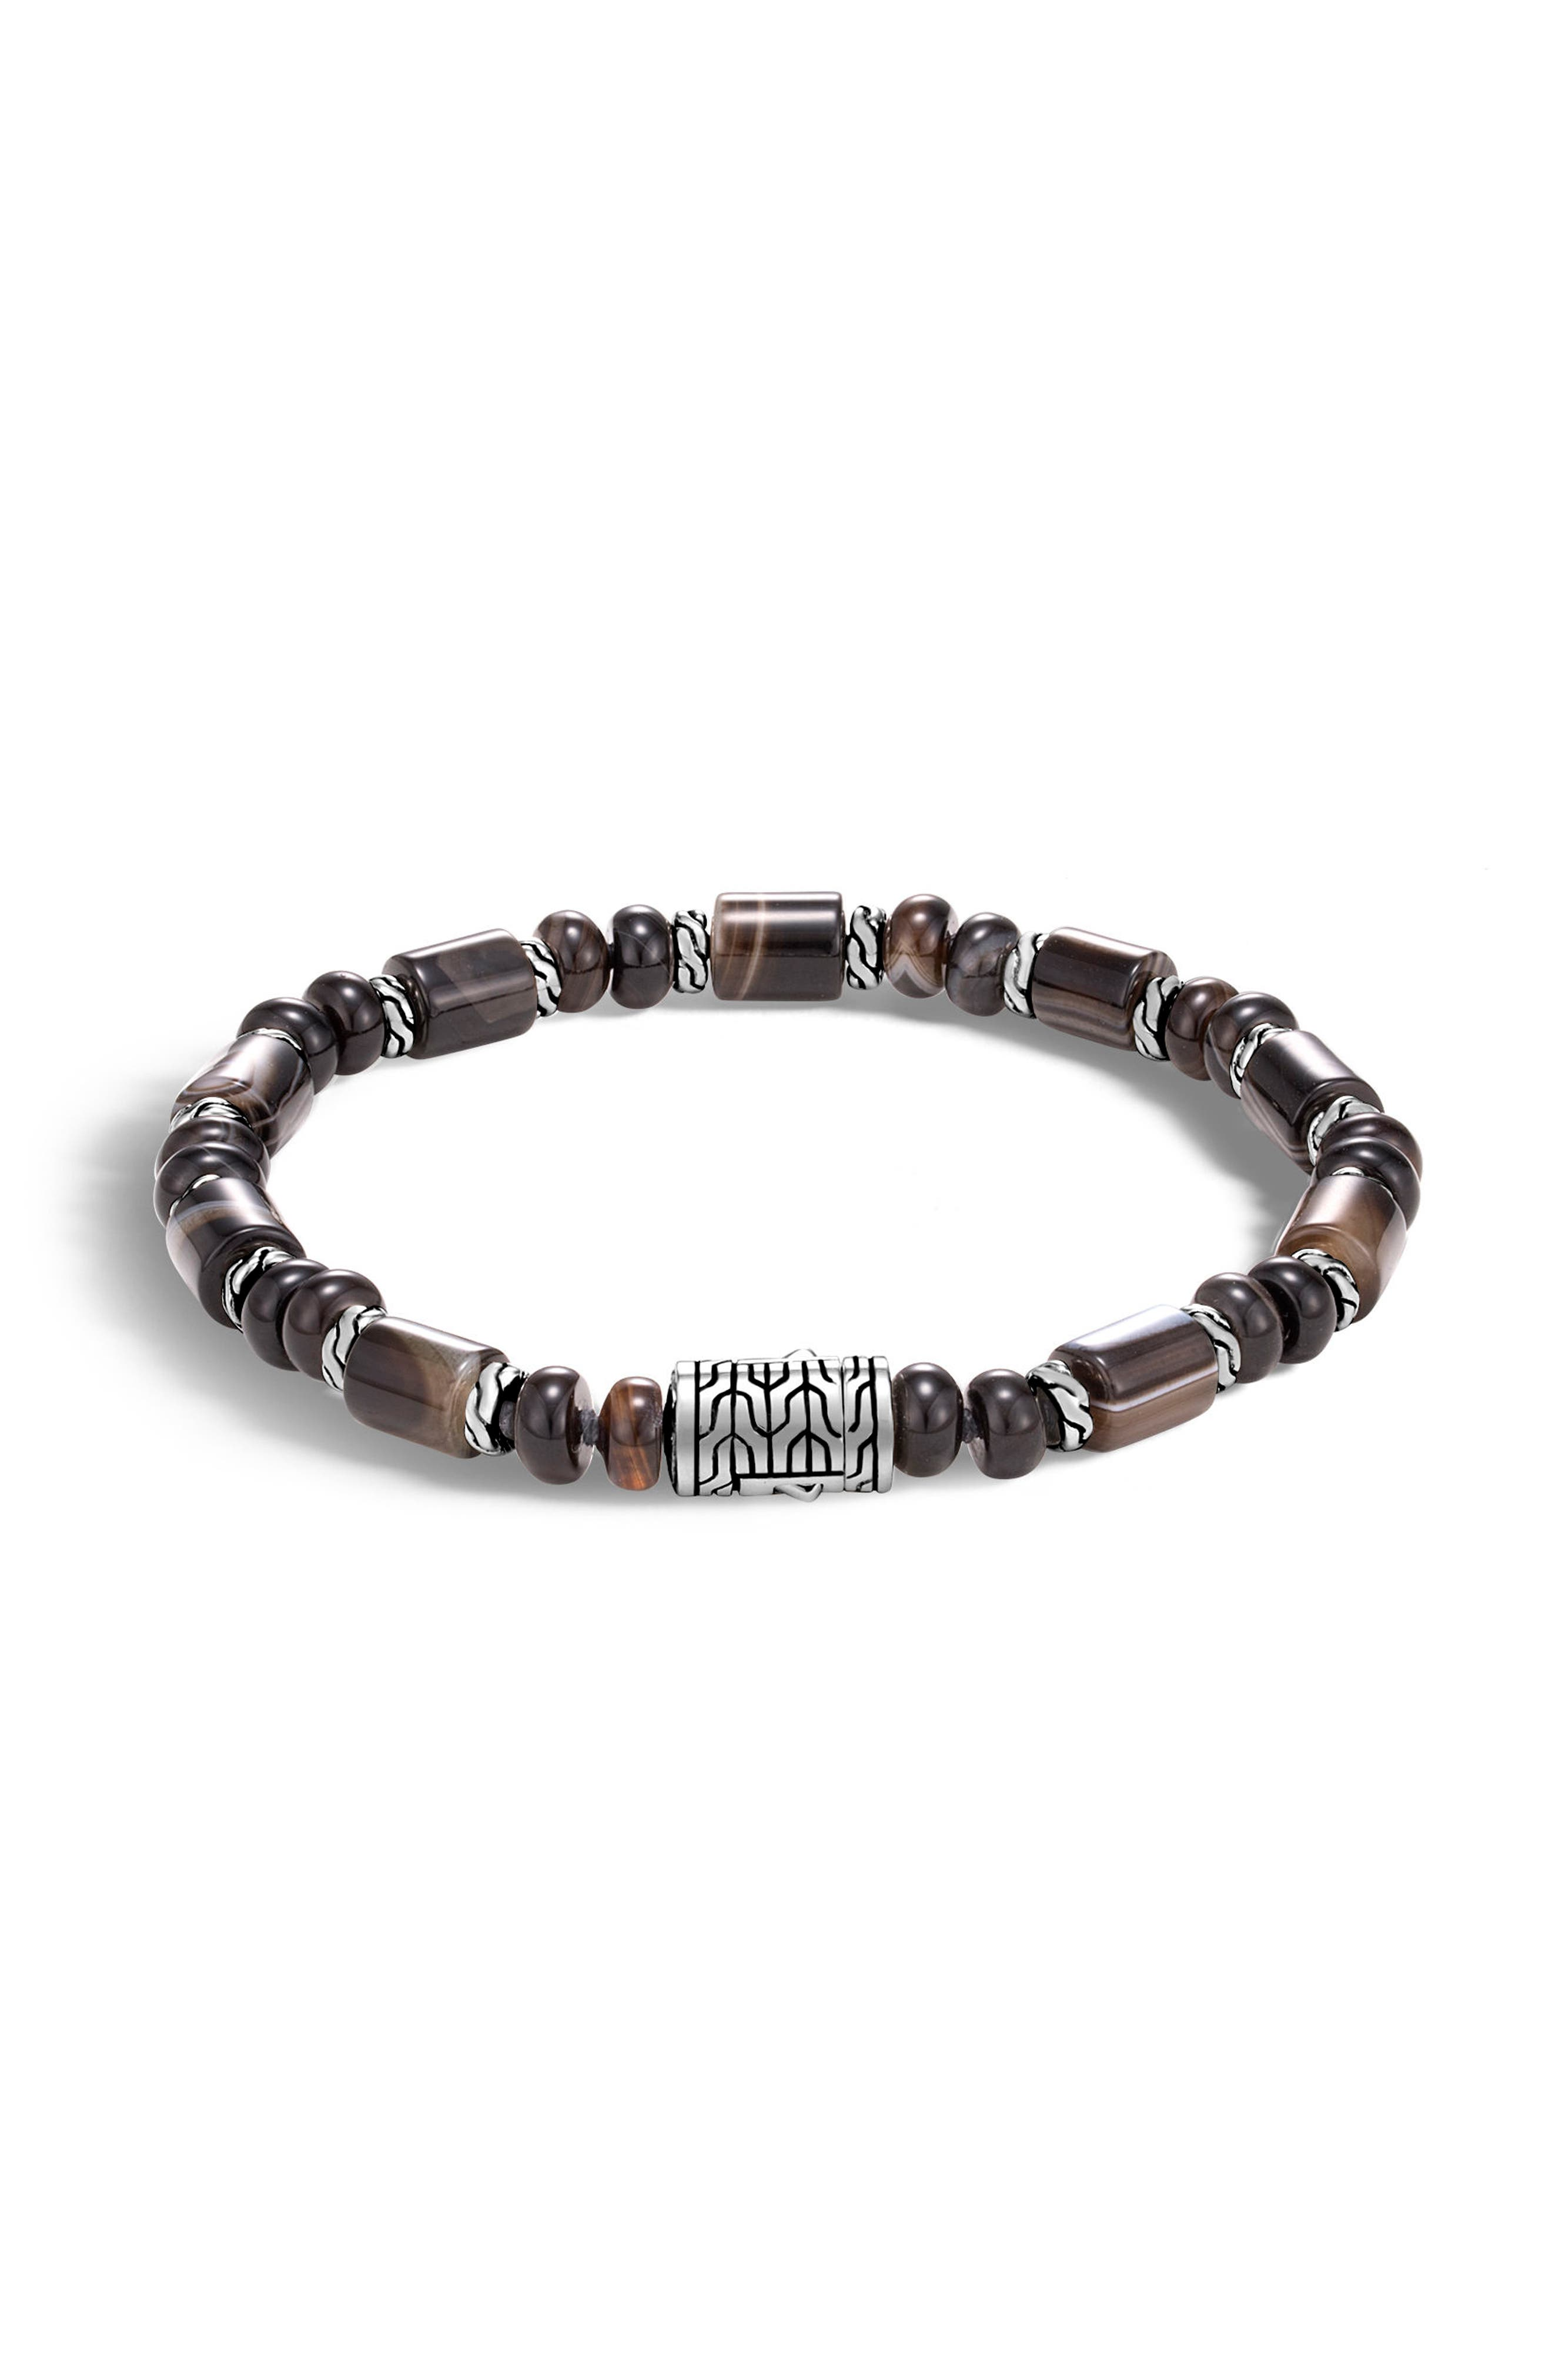 Classic Chain Bead Banded Agate Bracelet,                         Main,                         color, SILVER/ BANDED AGATE